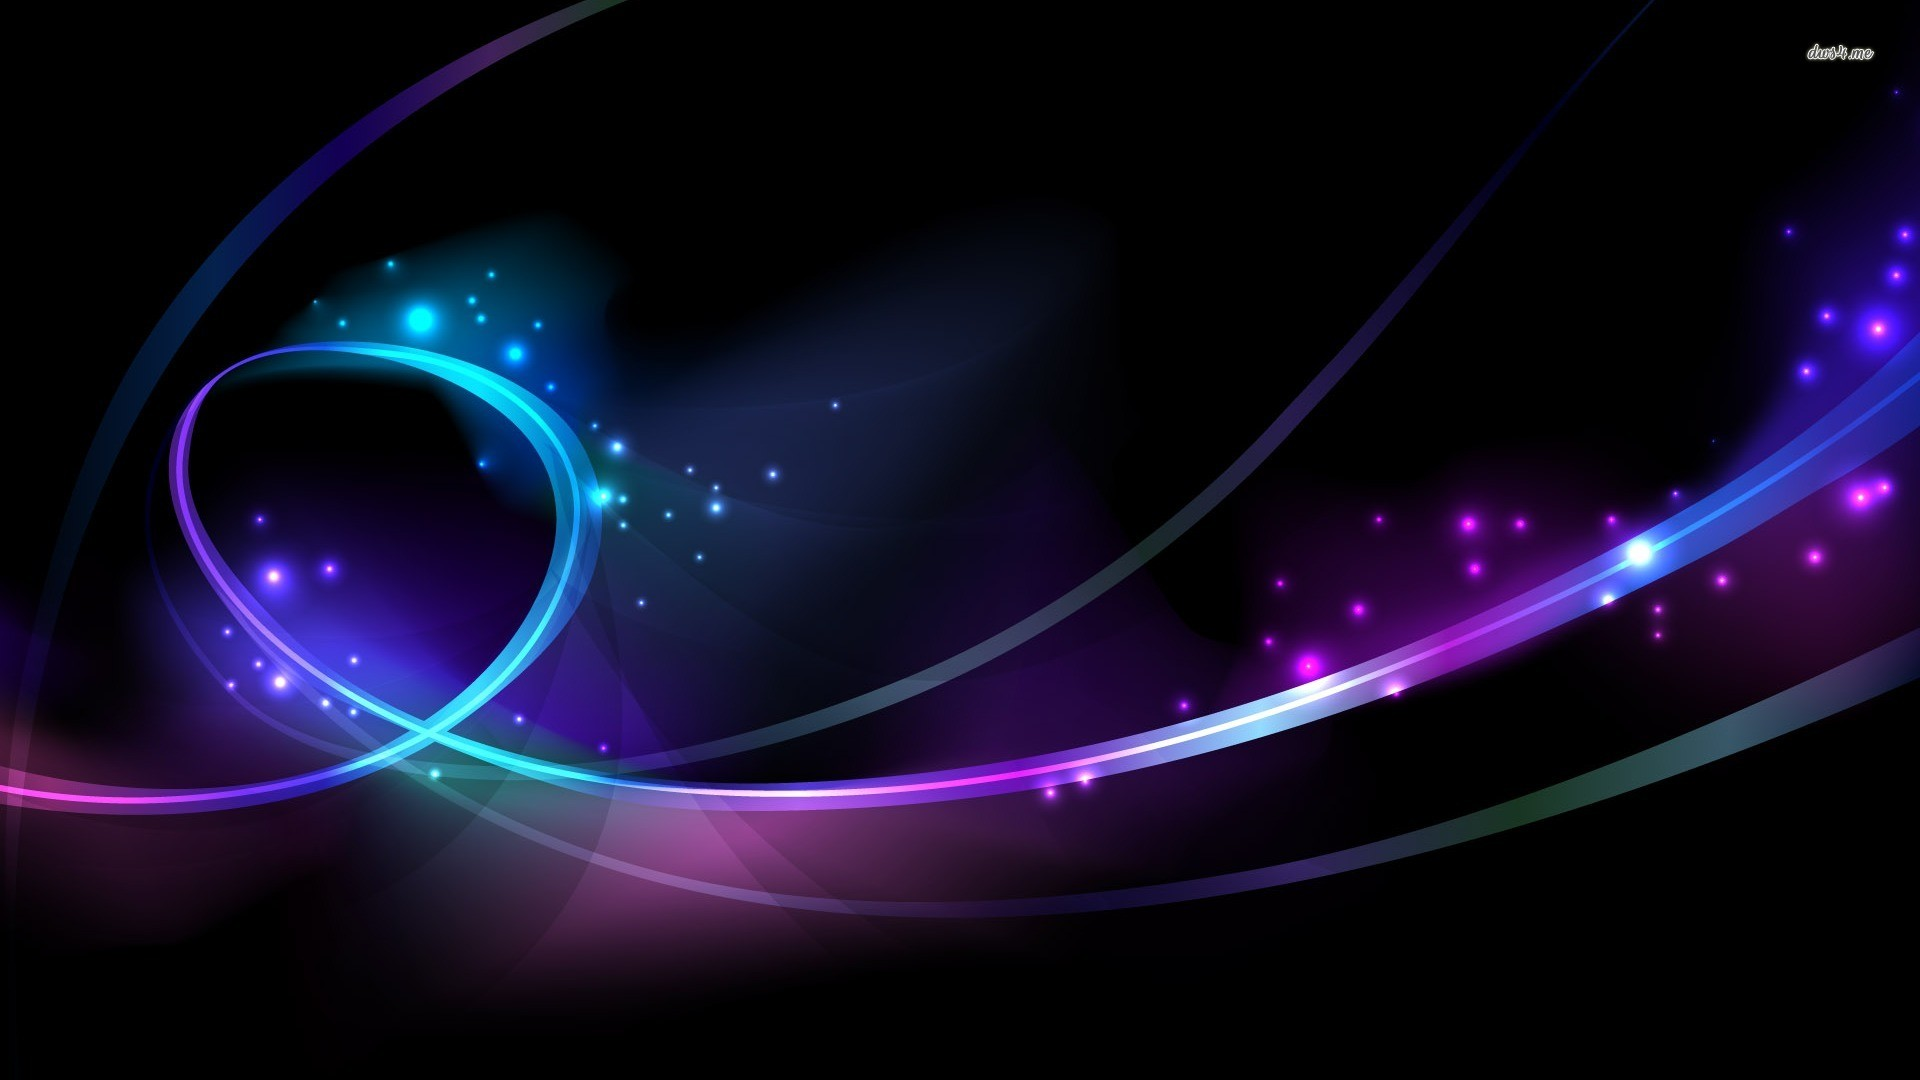 Glowing Circles and Curves wallpaper .